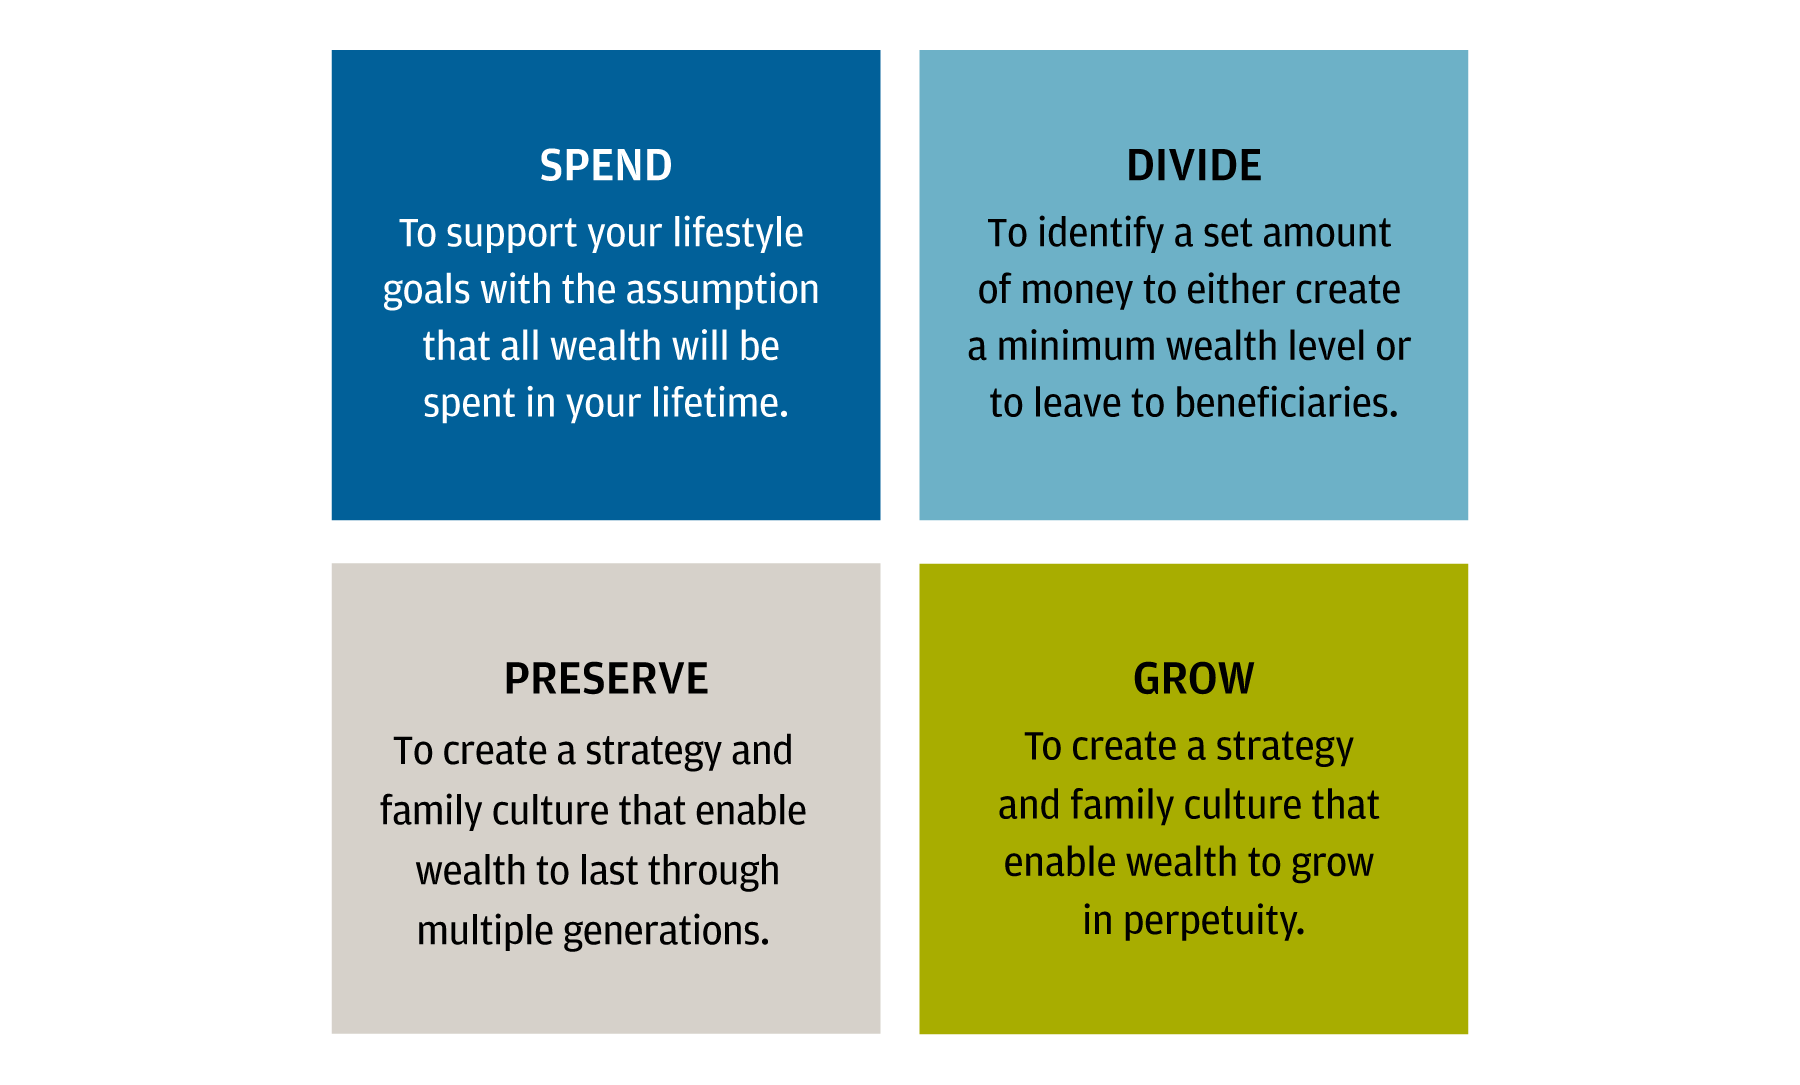 The graphic shows the four foundational intents for wealth.